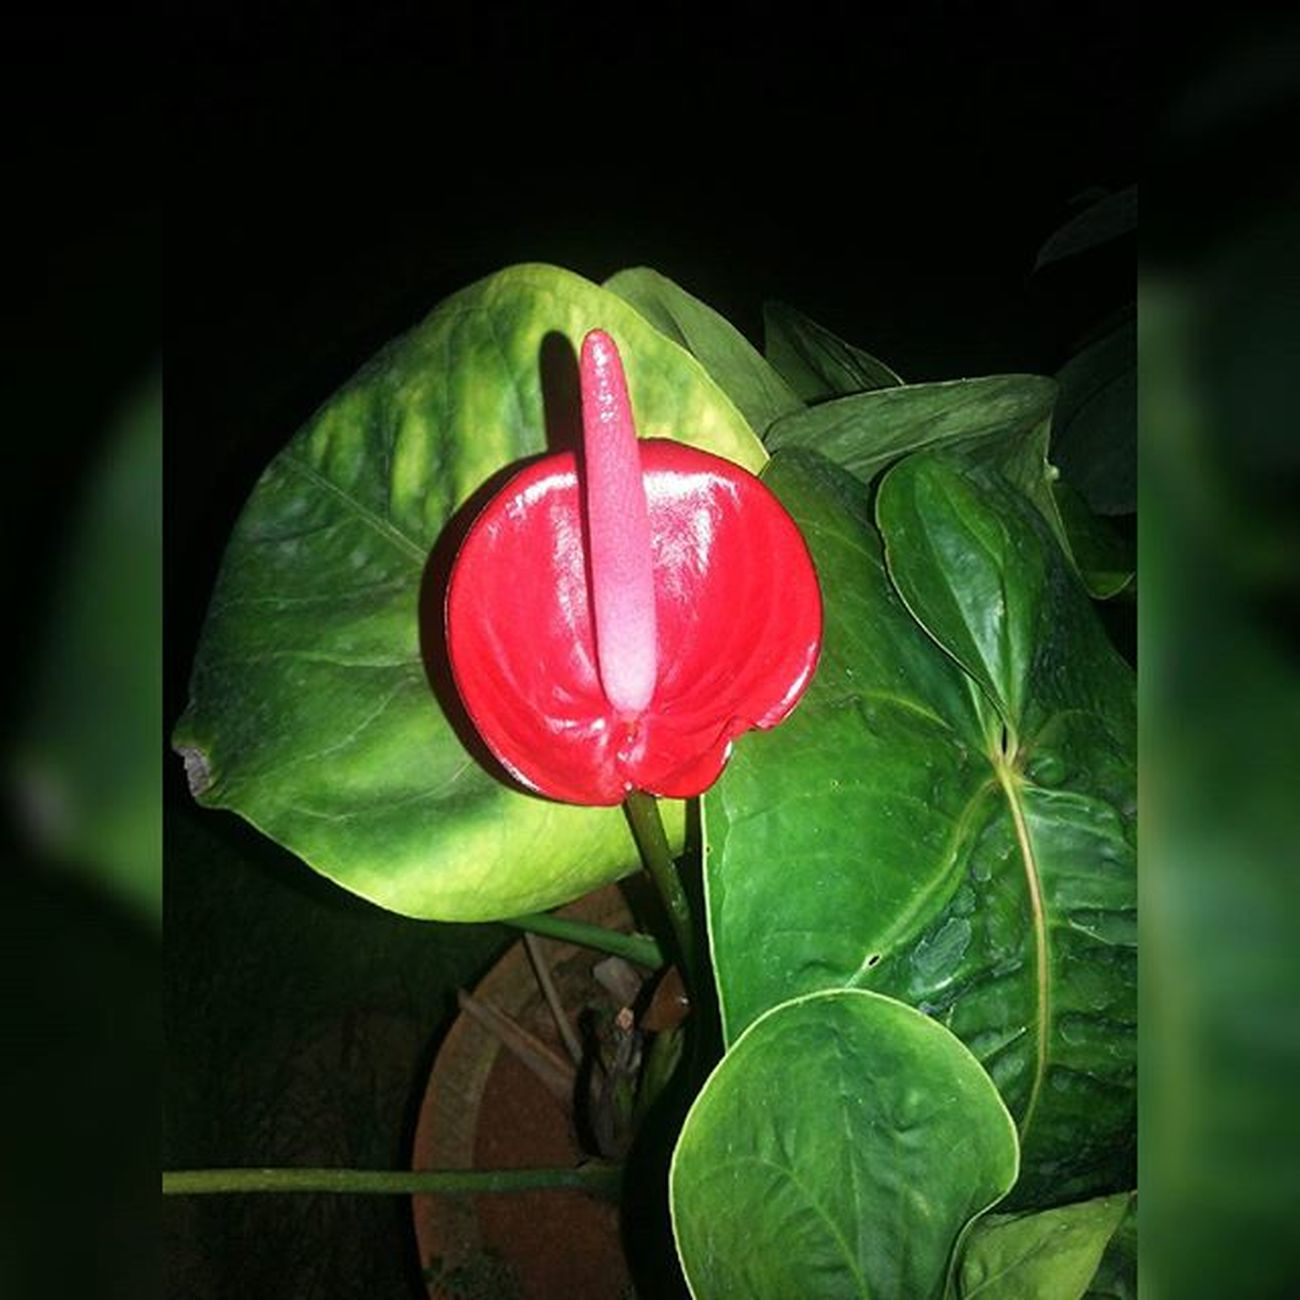 🌸🍀Arthuriumlily Beautiful Exoticflowers Flowers Flowerslovers Petals Blossom Flowerstagram Instablooms Mothernature Nature Green Floweroftheday Red Anthurium Capture_red Instanature Instaupload Instaflowers